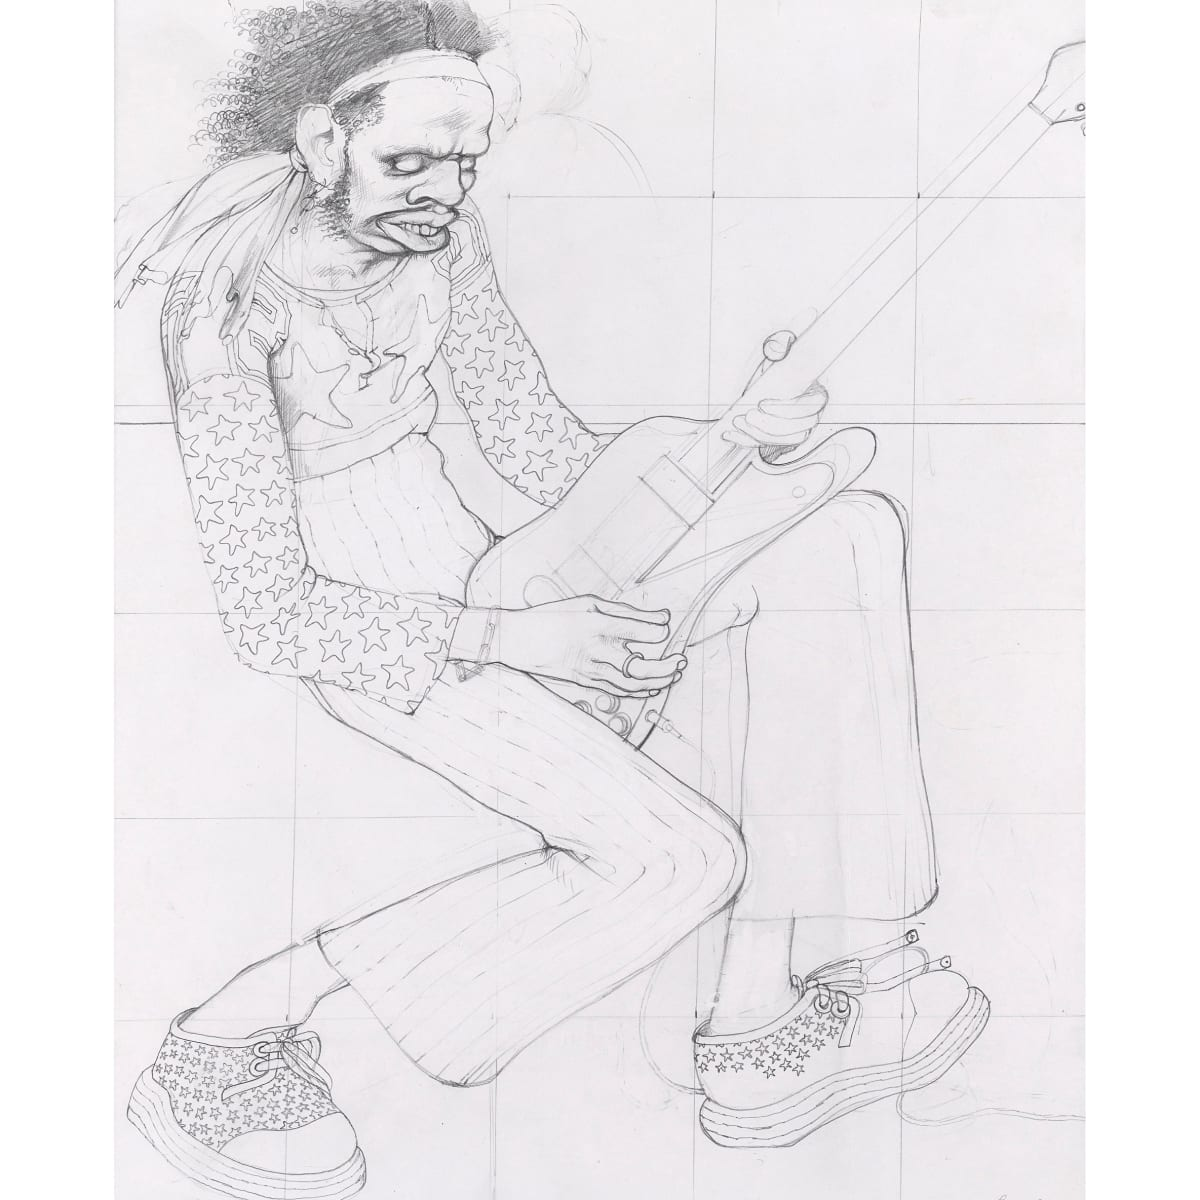 John Byrne Guitar Player, c.1971 signed pencil 15 3/4 x 13 inches